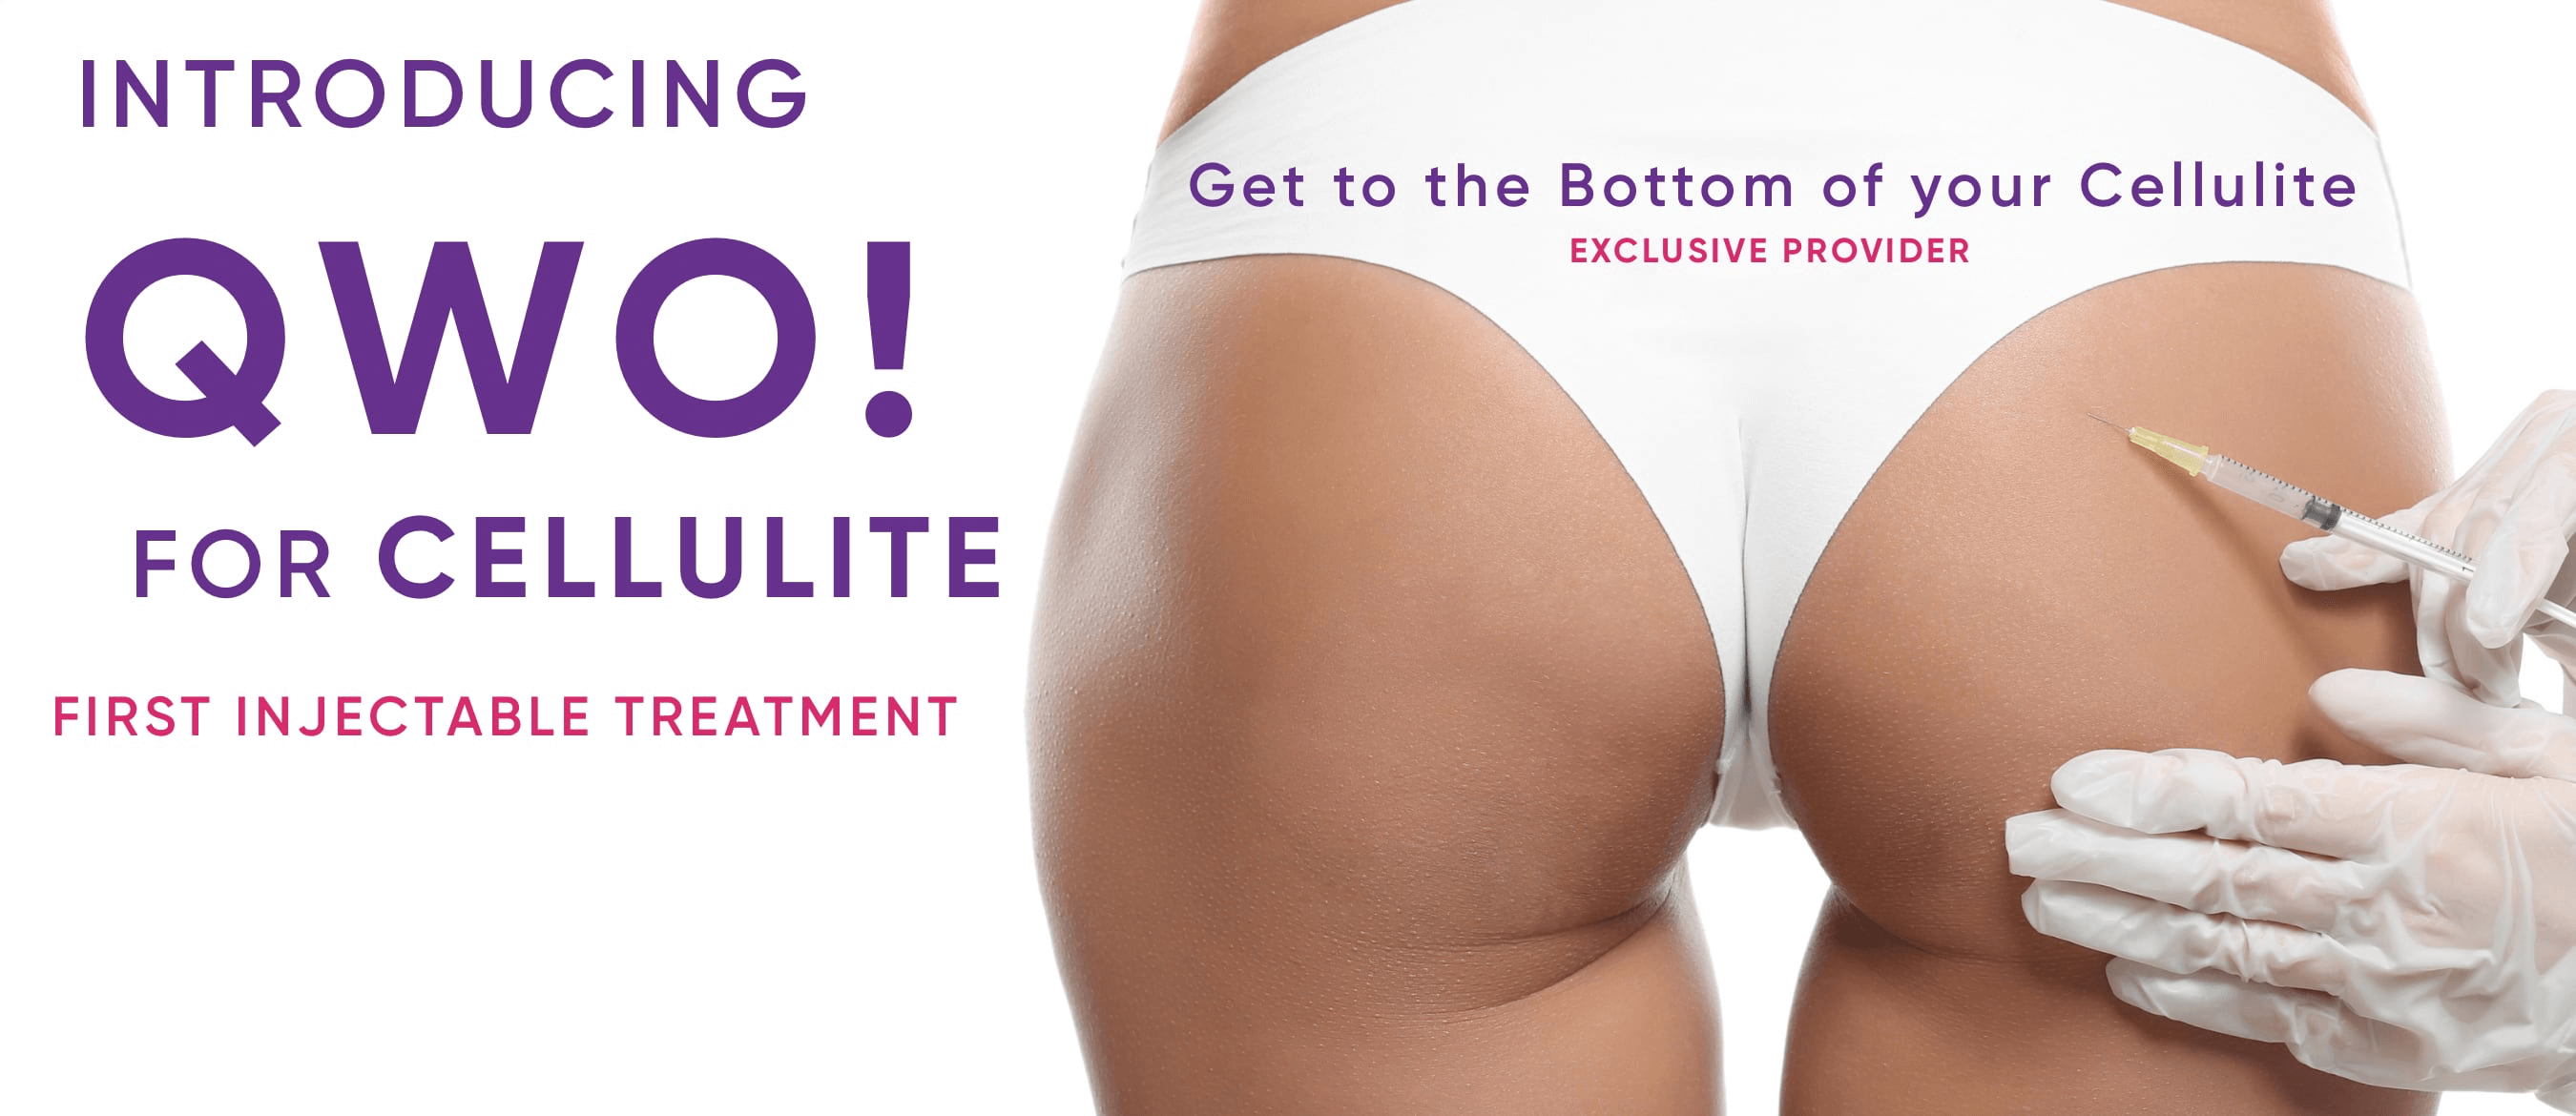 A banner introducing QWO for the treatment of cellulite, the first FDA approved injectable for cellulite reduction